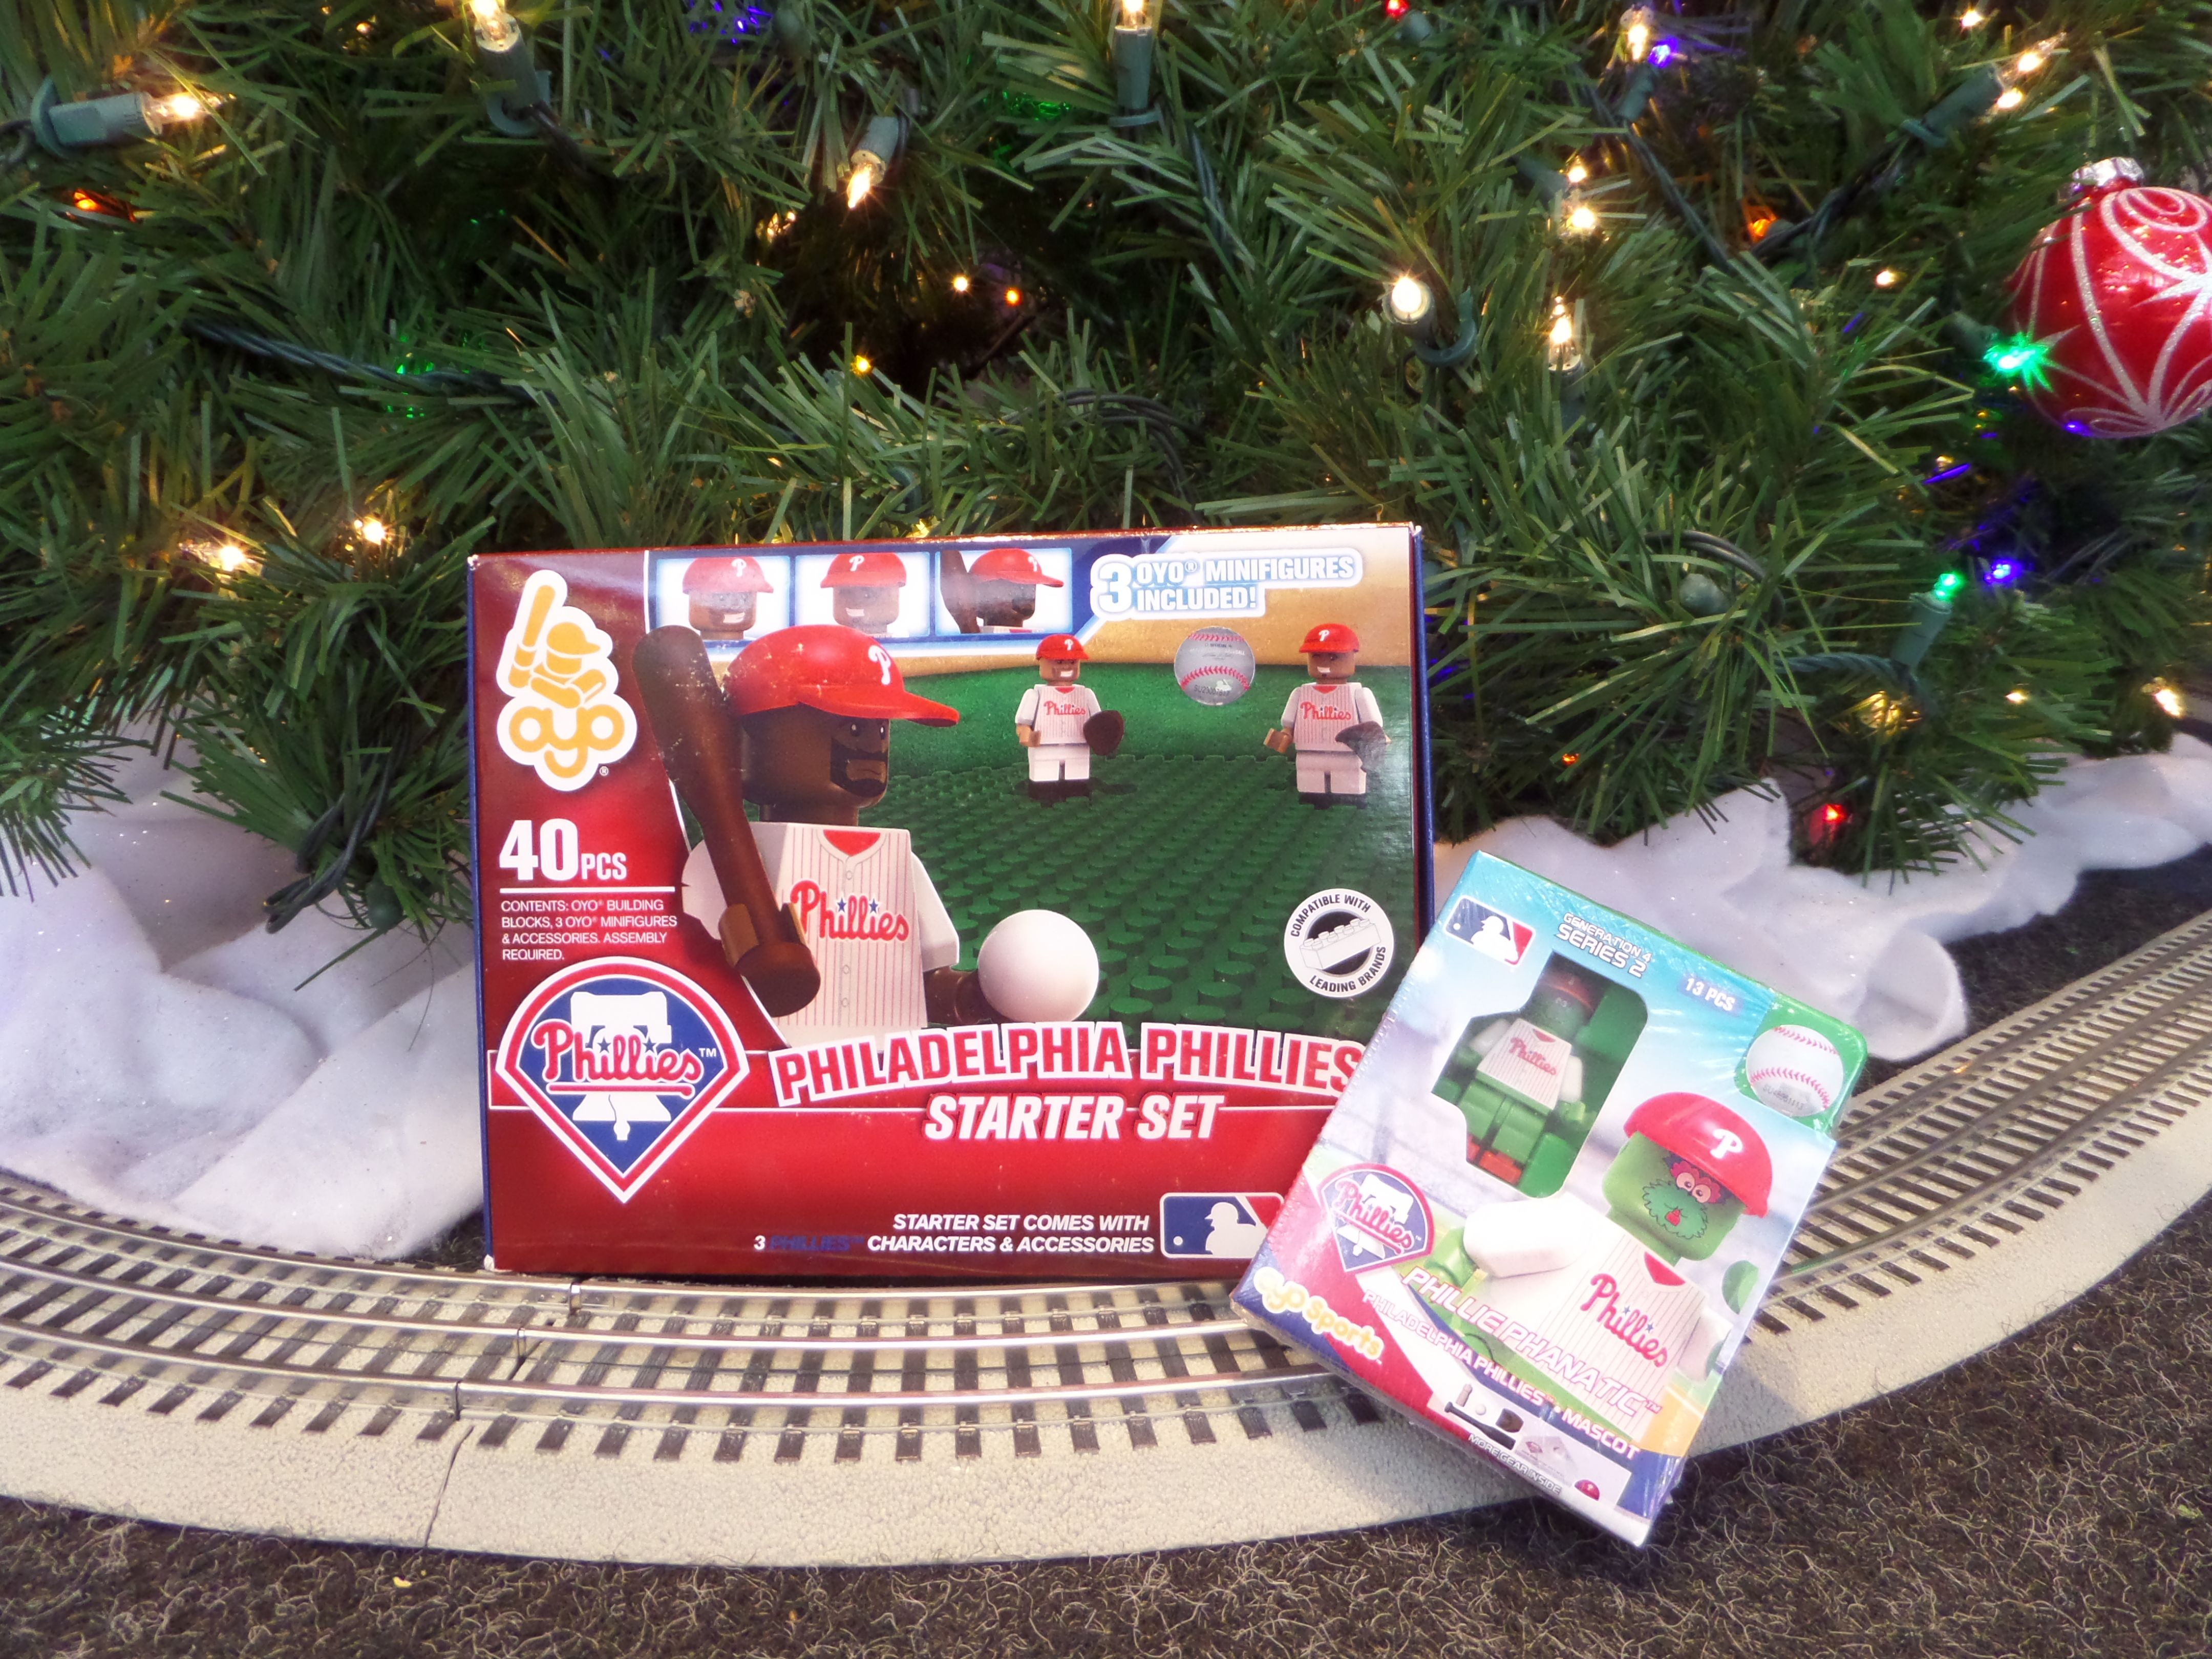 For the young and the young at hear, snag a OYO Sports Philadelphia Phillies 40-Piece Starter Set and get a free OYO player figurine, only during the Phillies 12 Days of Christmas event!